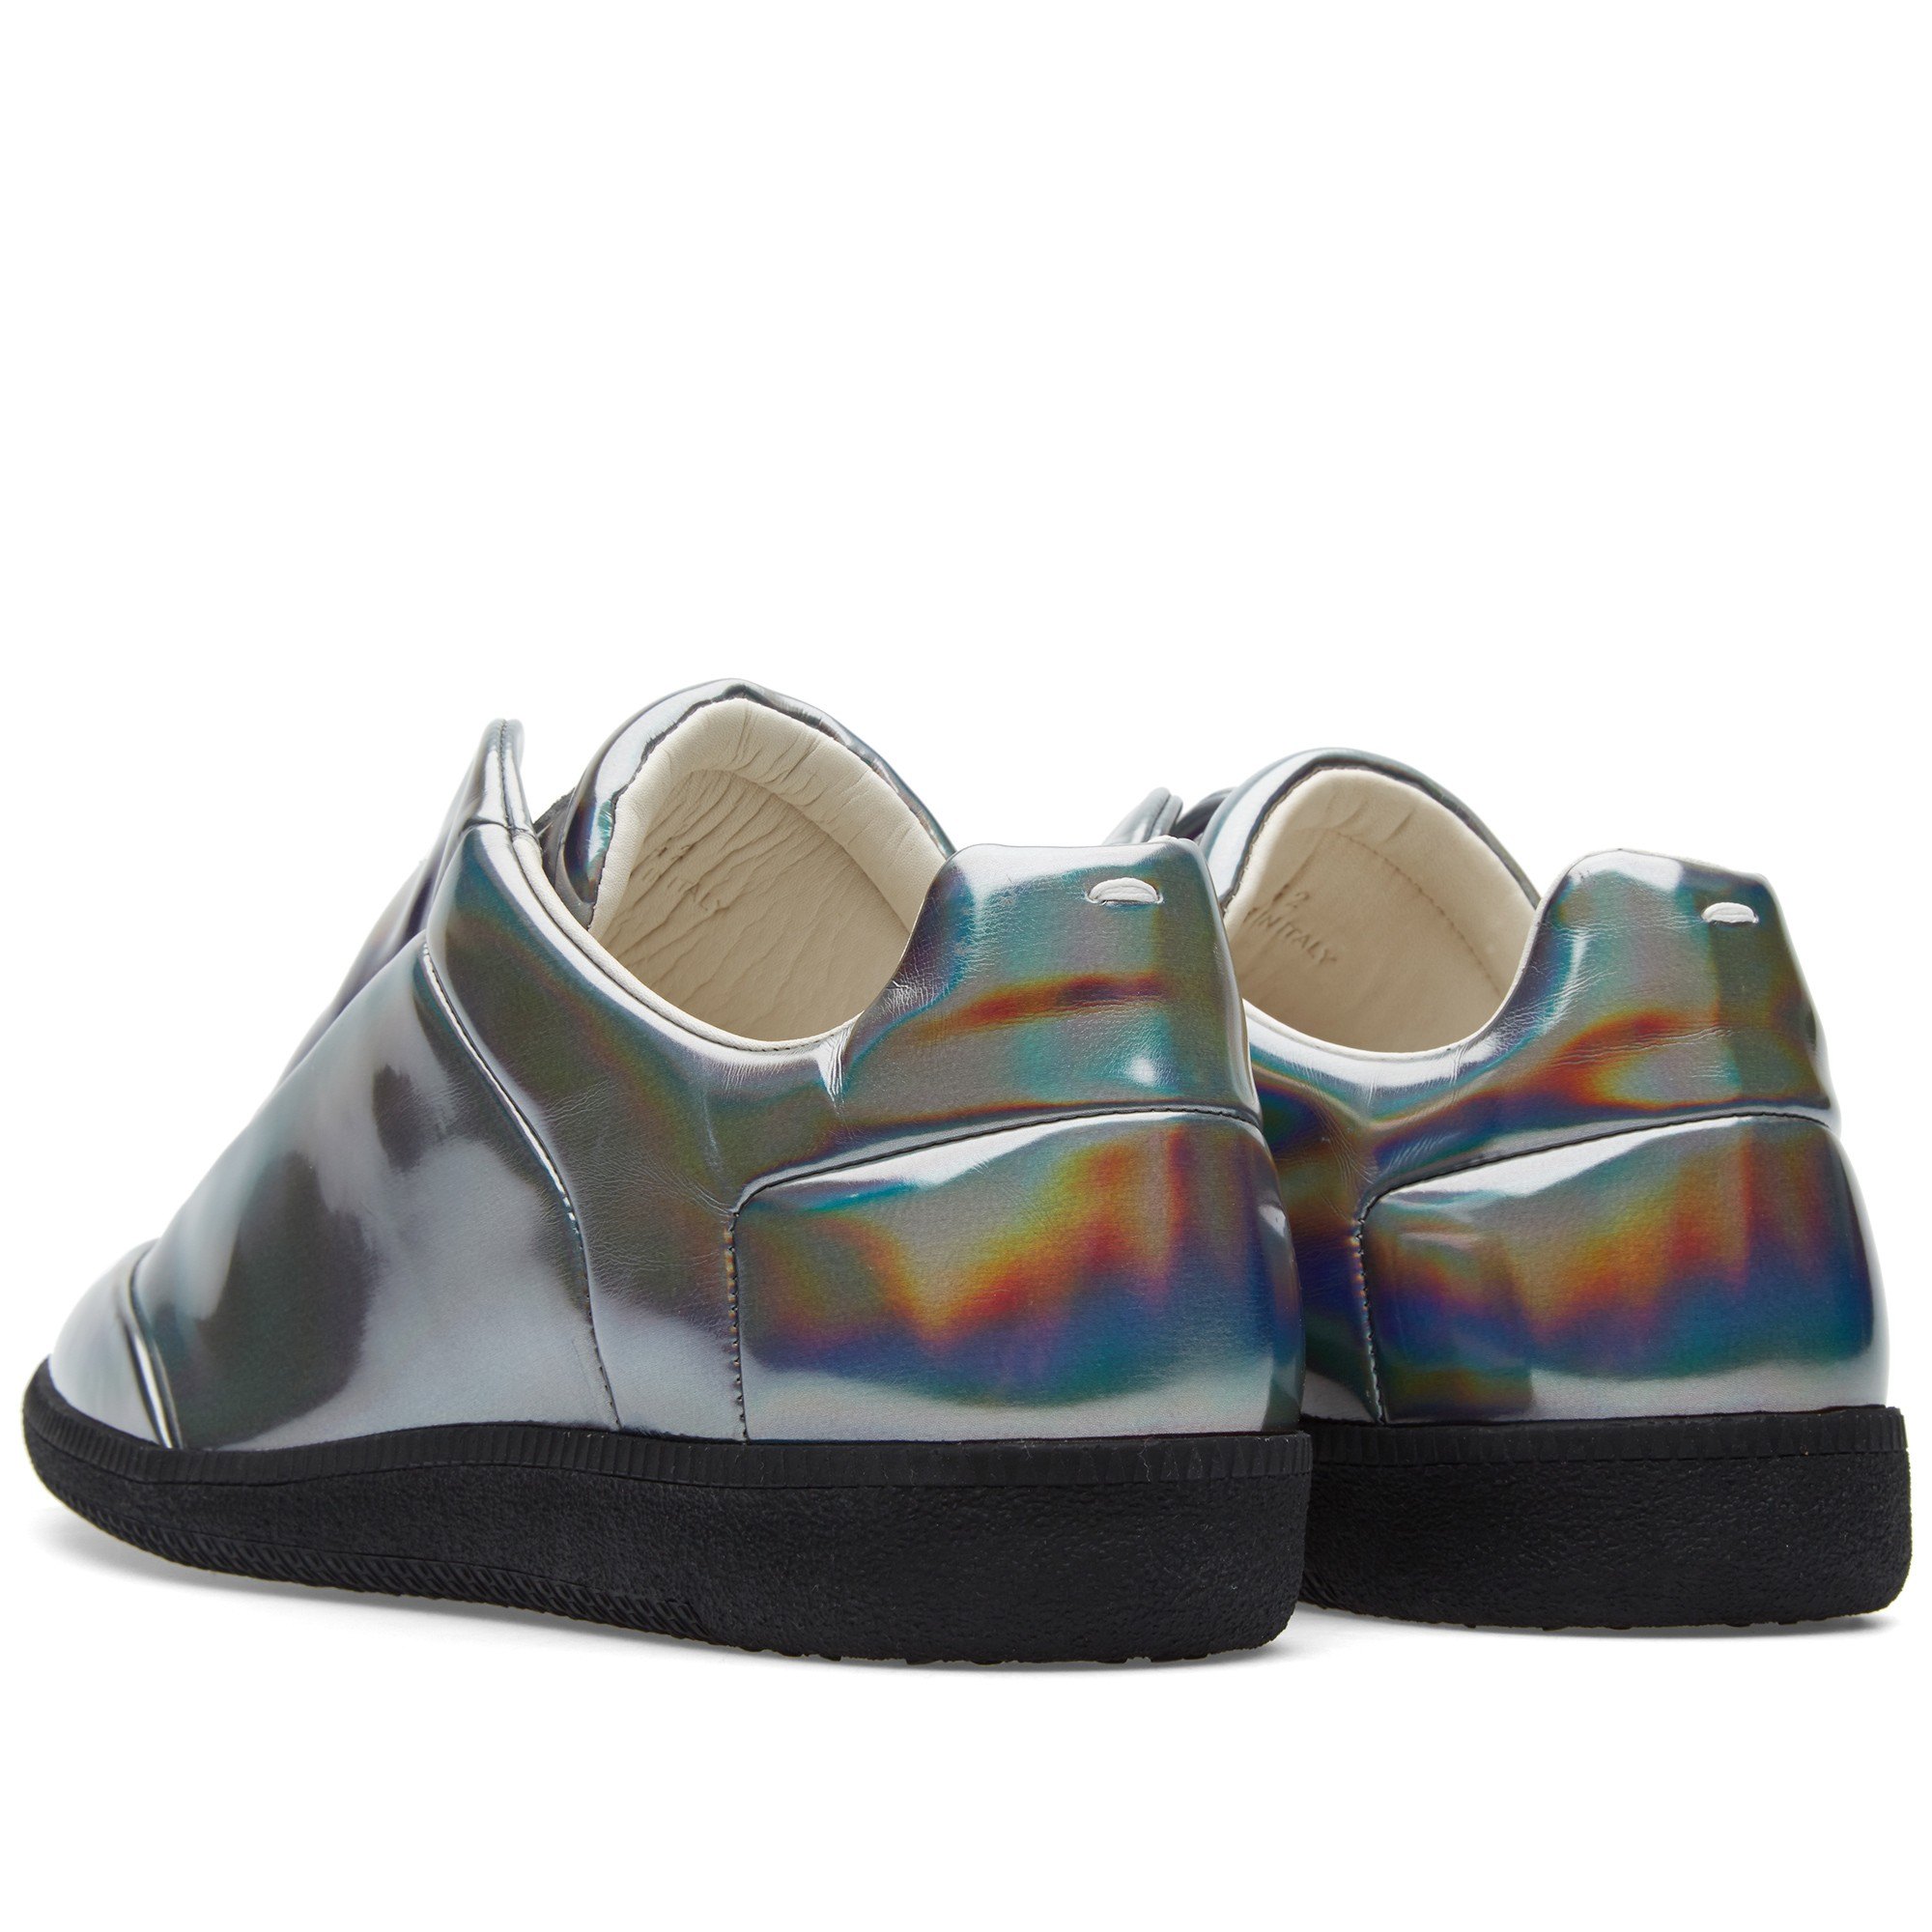 "Hott Pick: Maison Margiela 22 Future Low ""Hologram"" Sneaker"